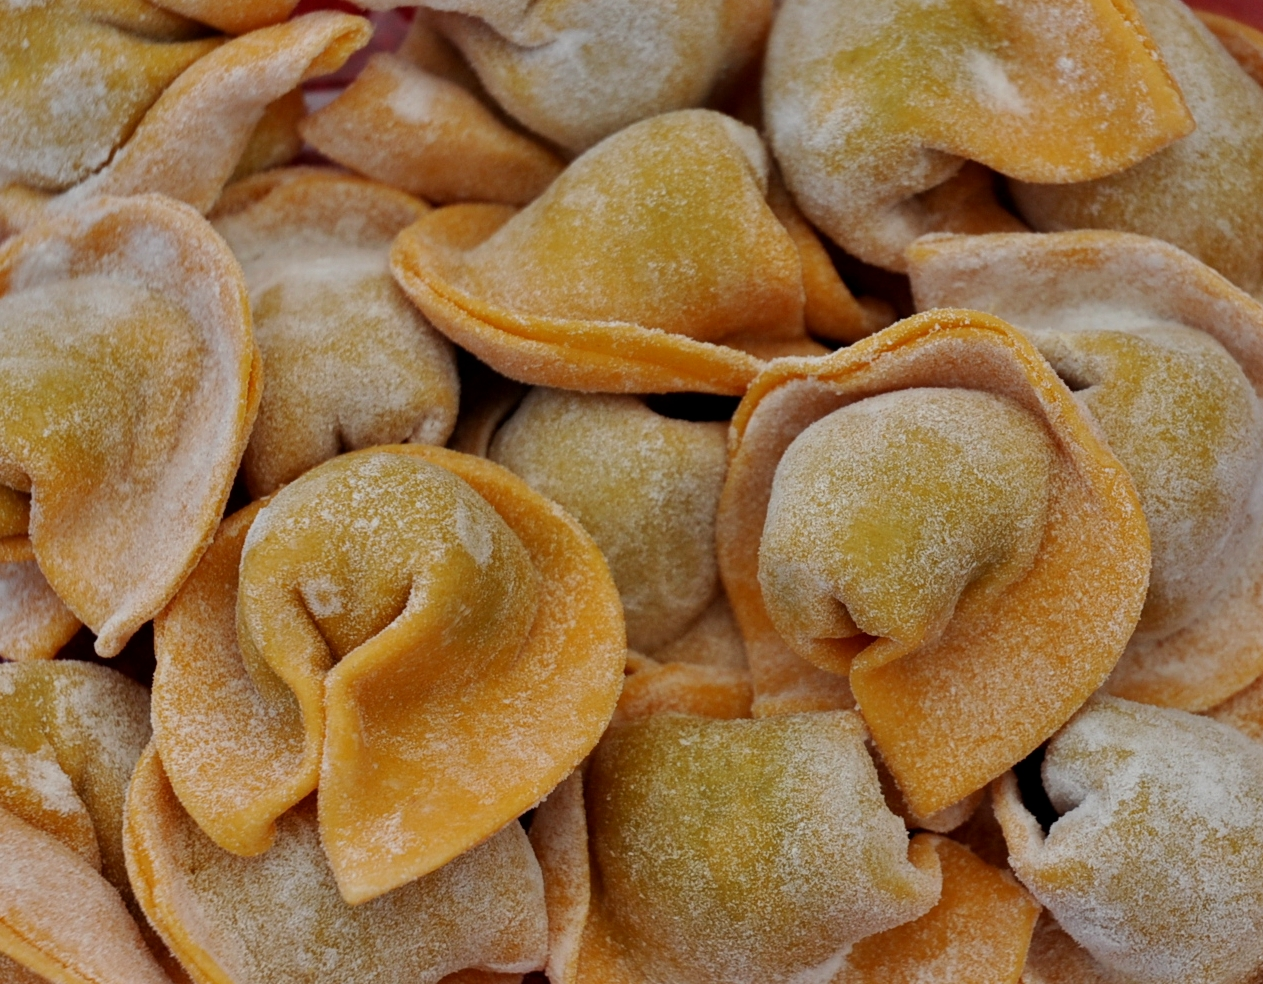 Carrot-Spinach cappellacci from Pasteria Lucchese. Photo copyright 2010 by Zachary D. Lyons.